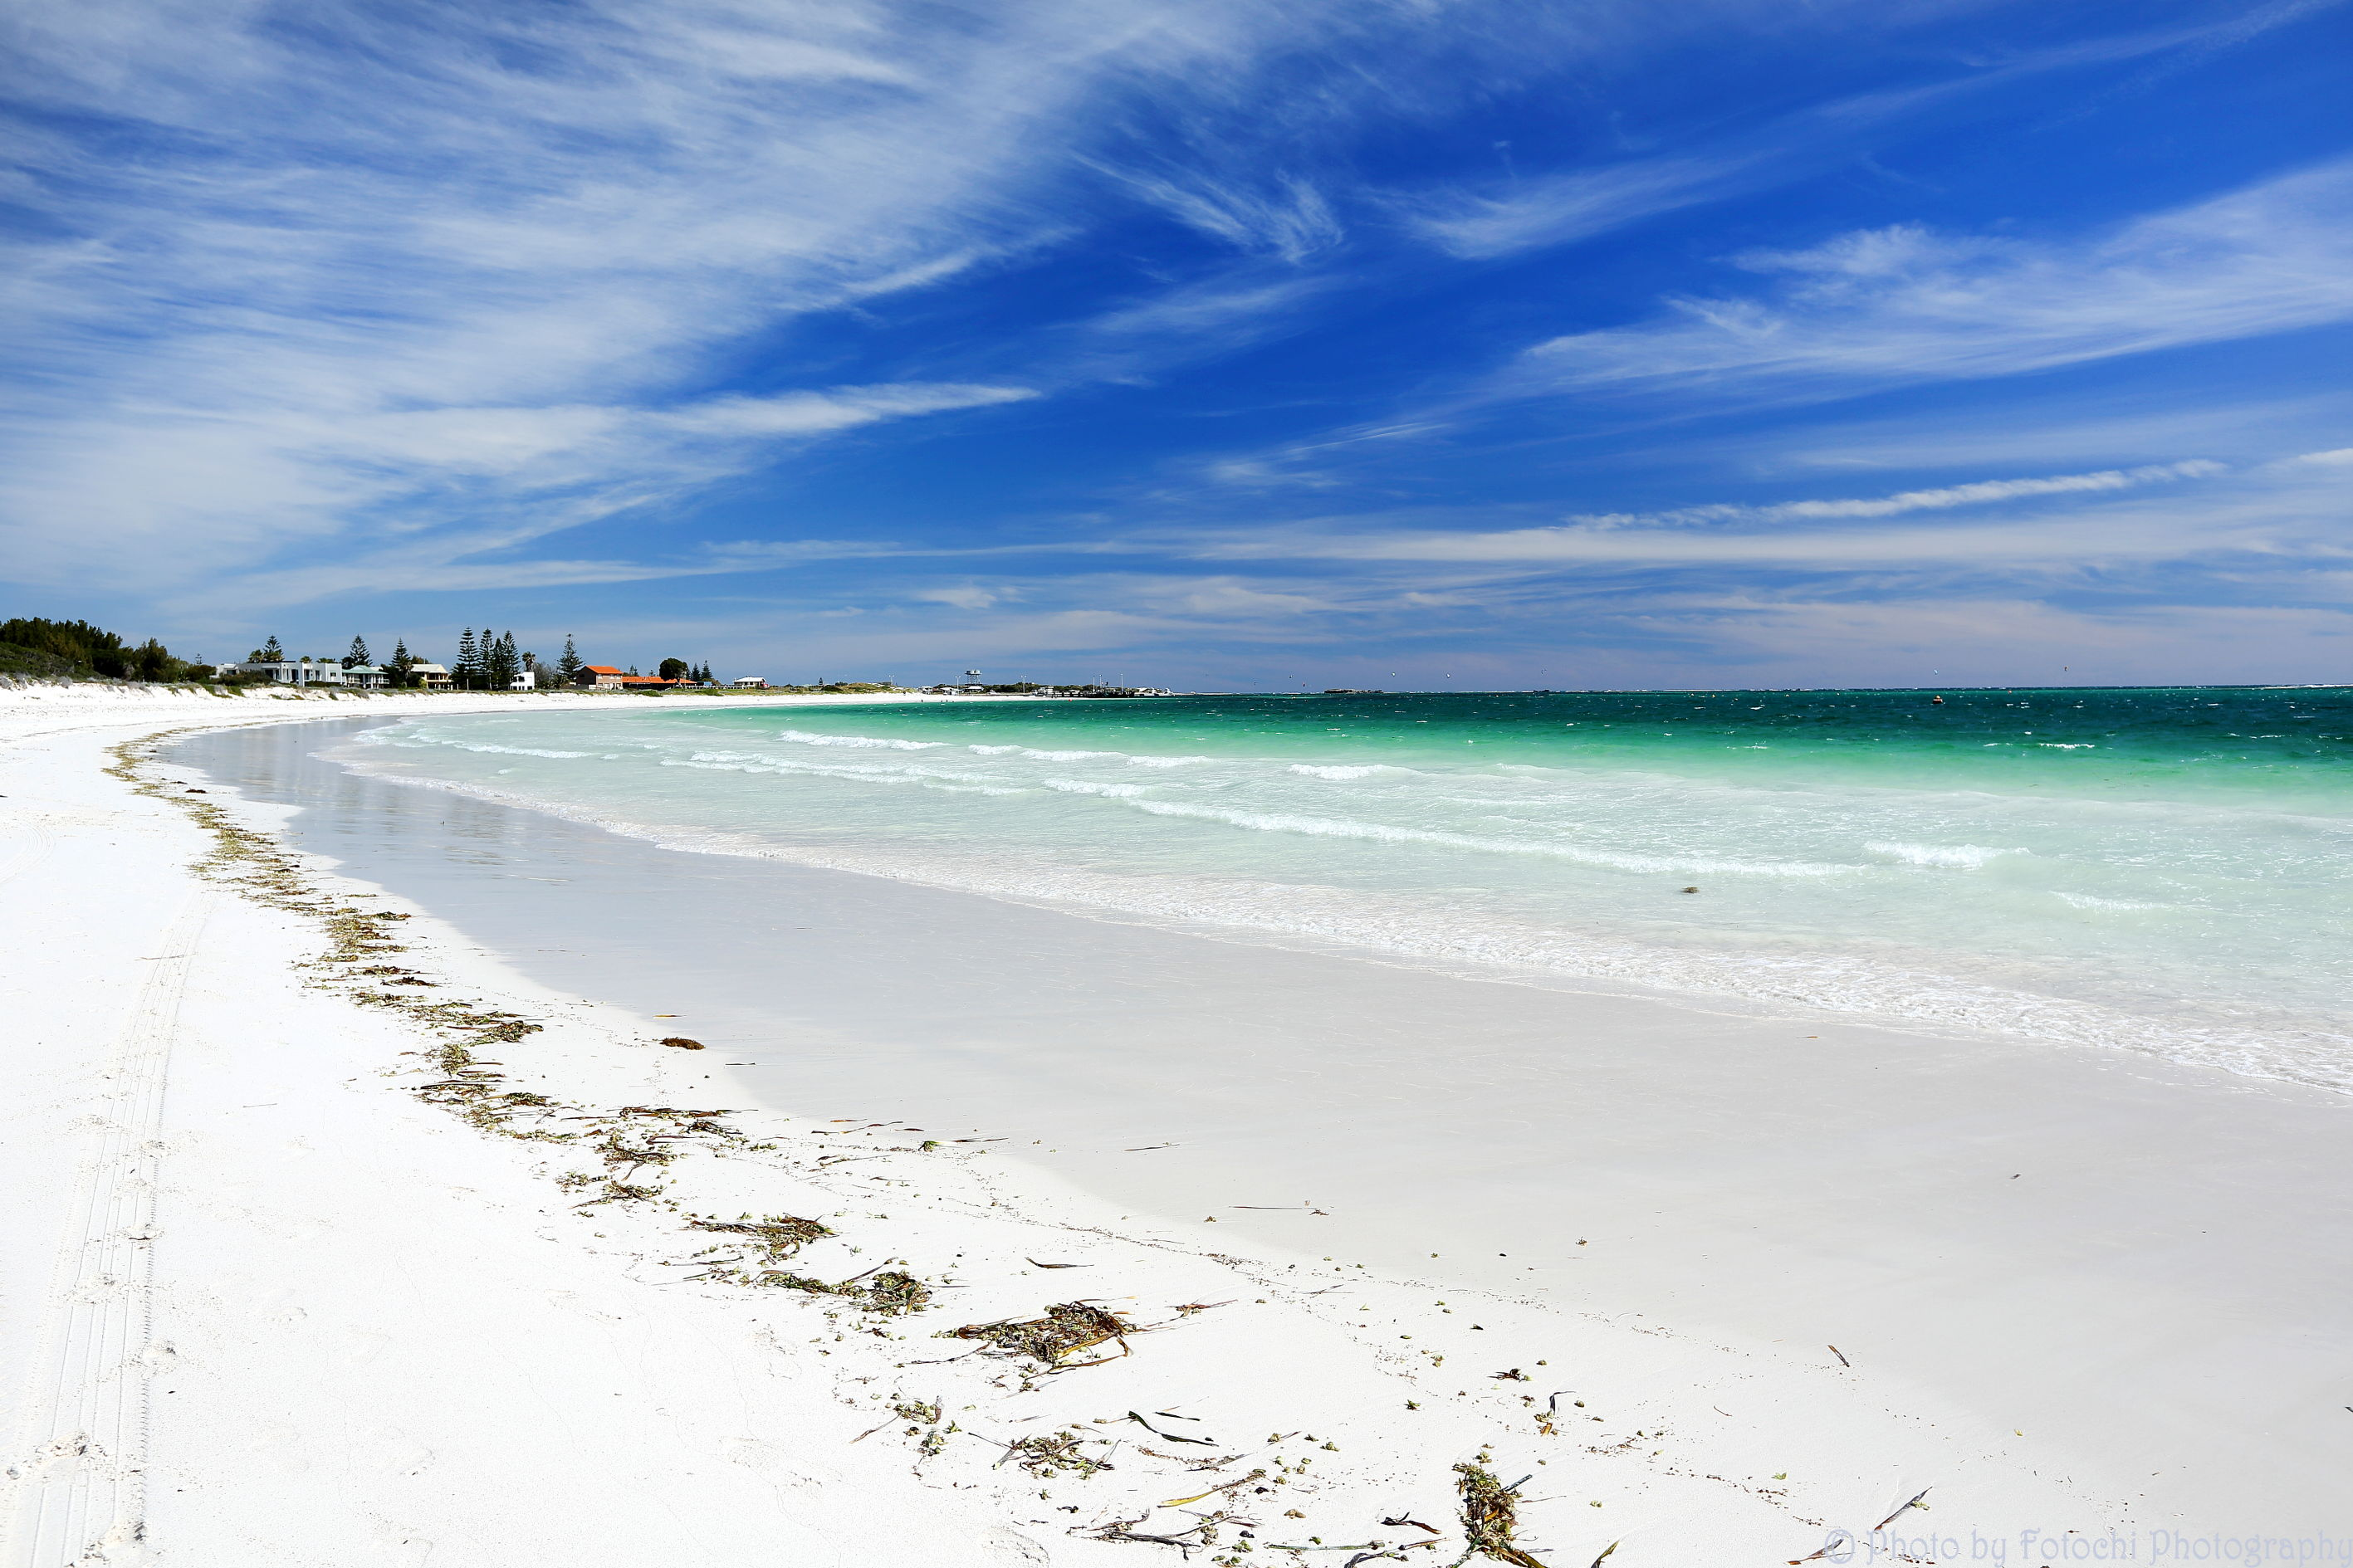 Lancelin Bay LBH